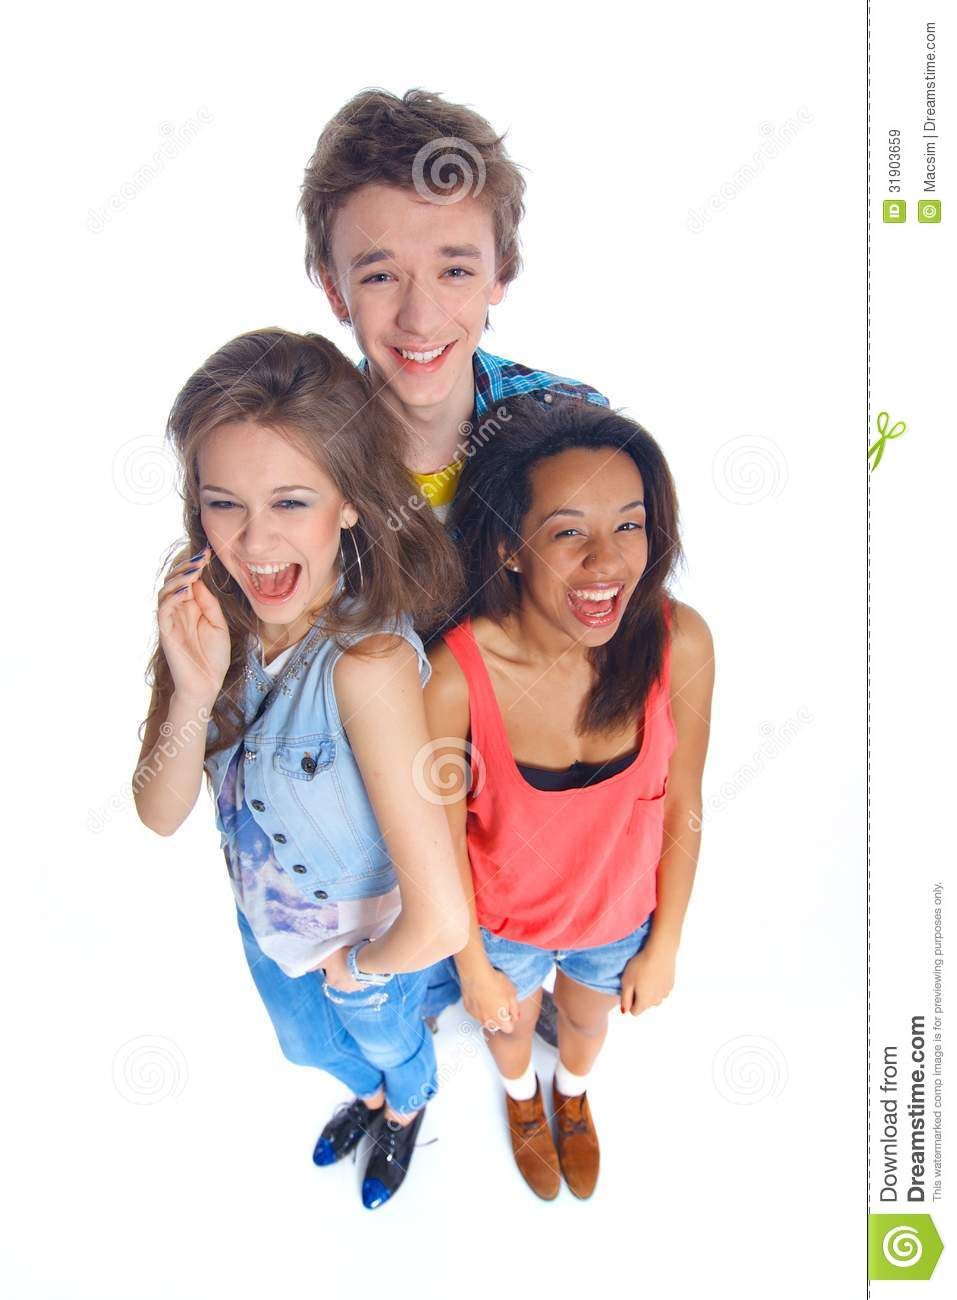 Three pretty teens in action